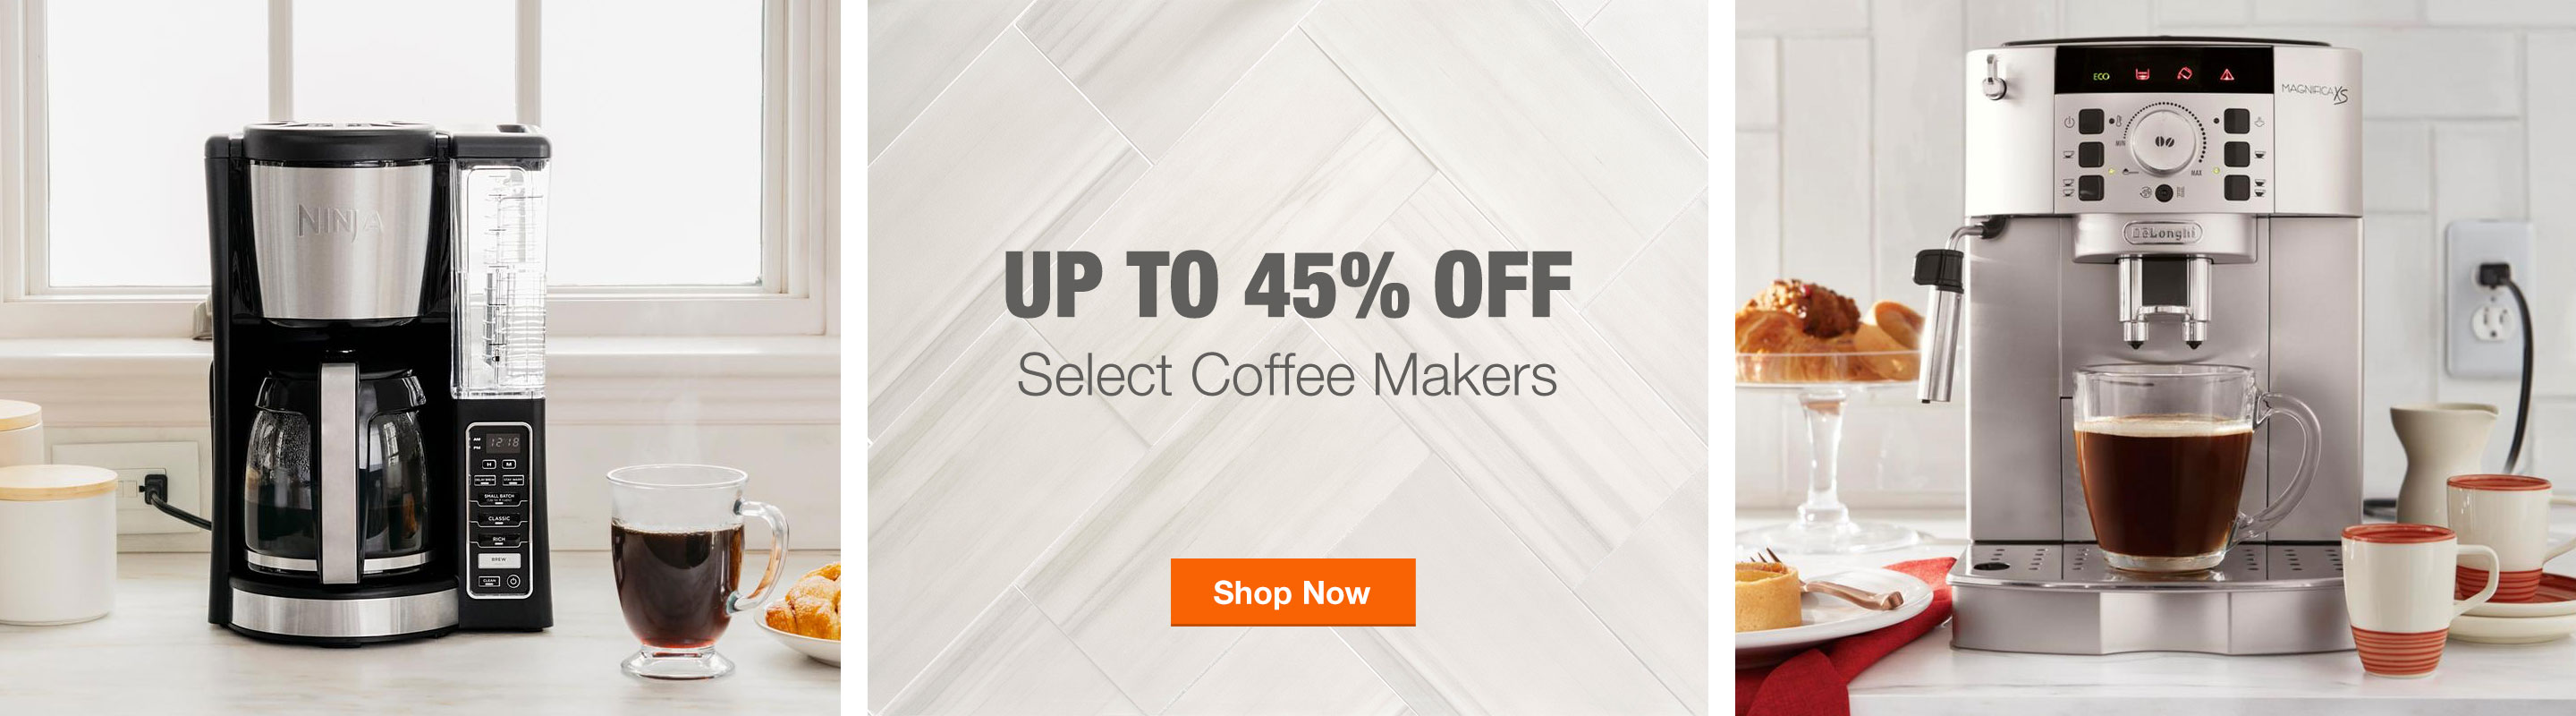 Up to 45% Off Select Coffee Makers